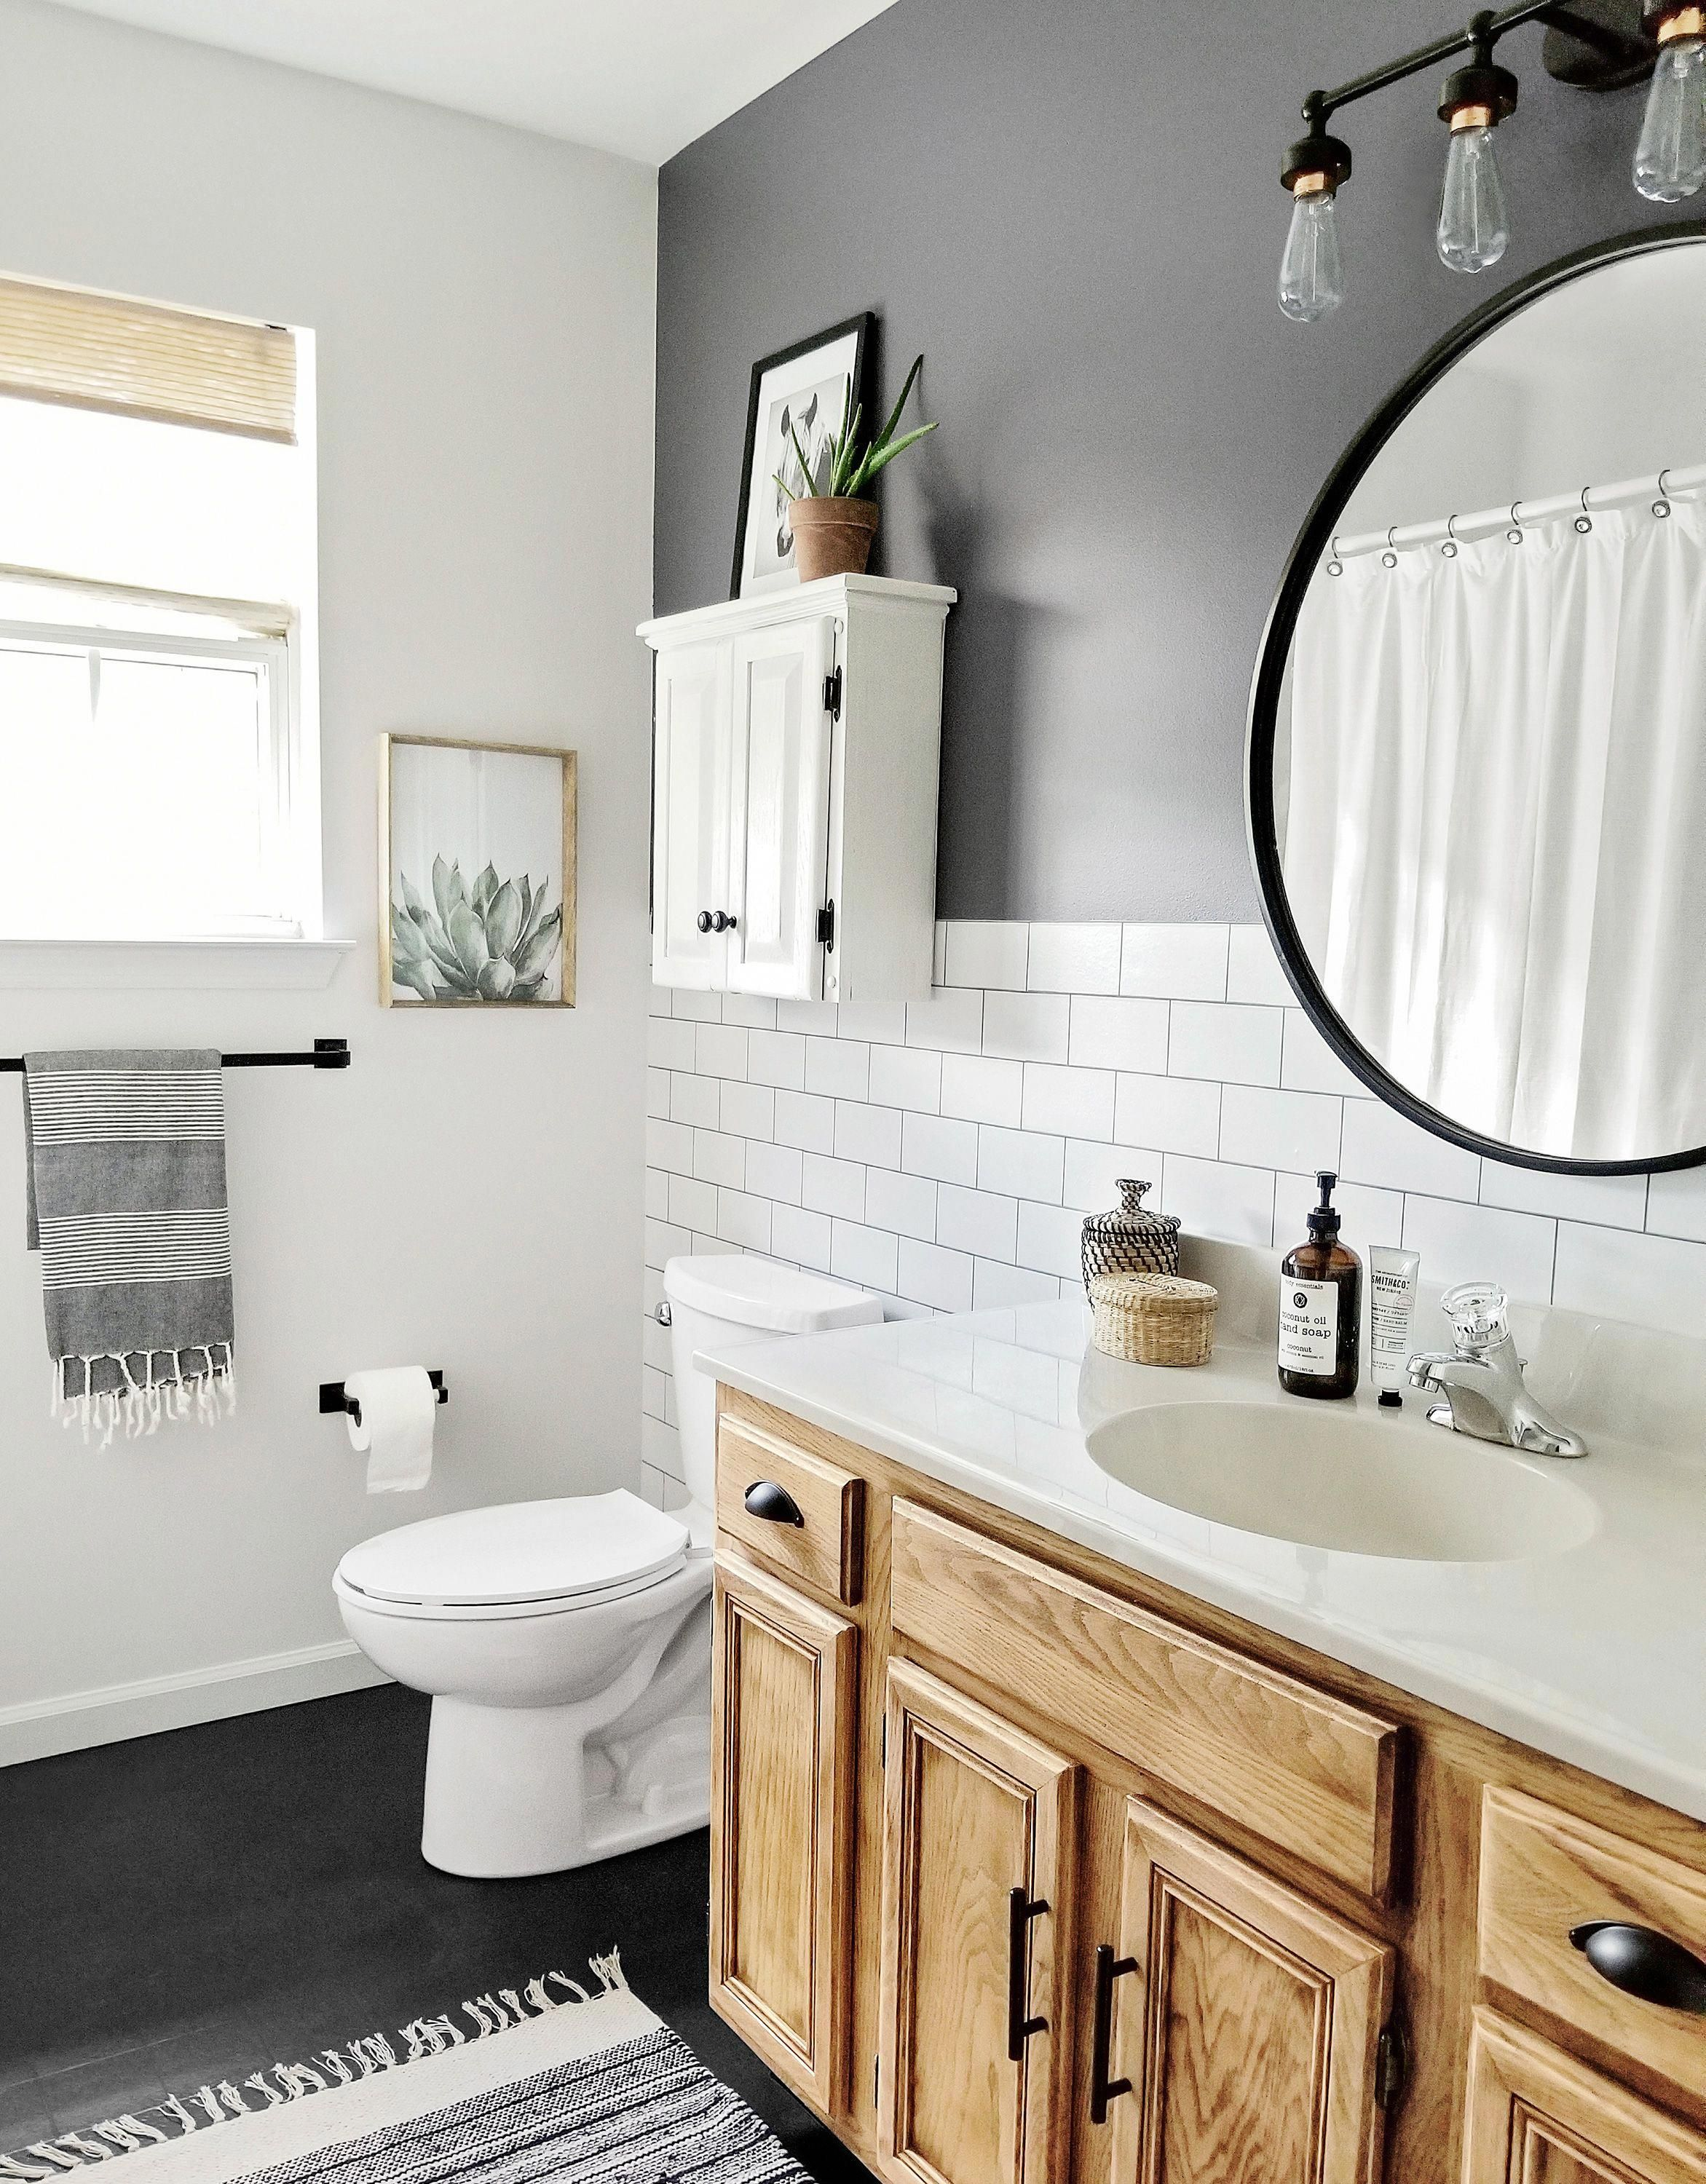 Kitchen And Bathroom Remodel Upgrade Design Ideas And Expert Advice From Remodeling To Bathrooms Remodel Kitchen Bathroom Remodel Bathroom Renovation Diy